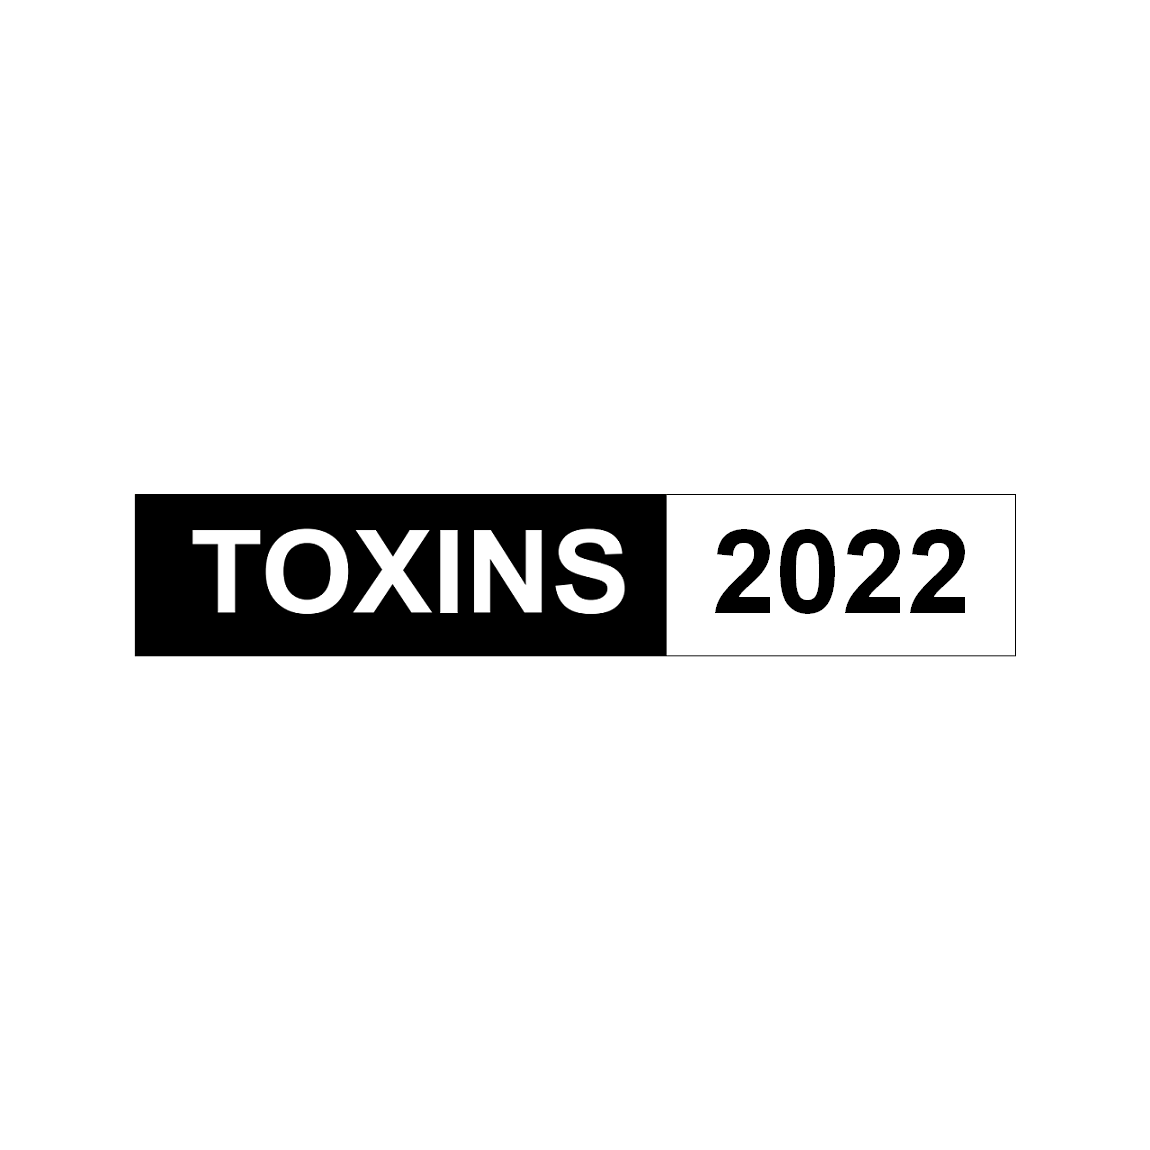 TOXINS Conference 2022